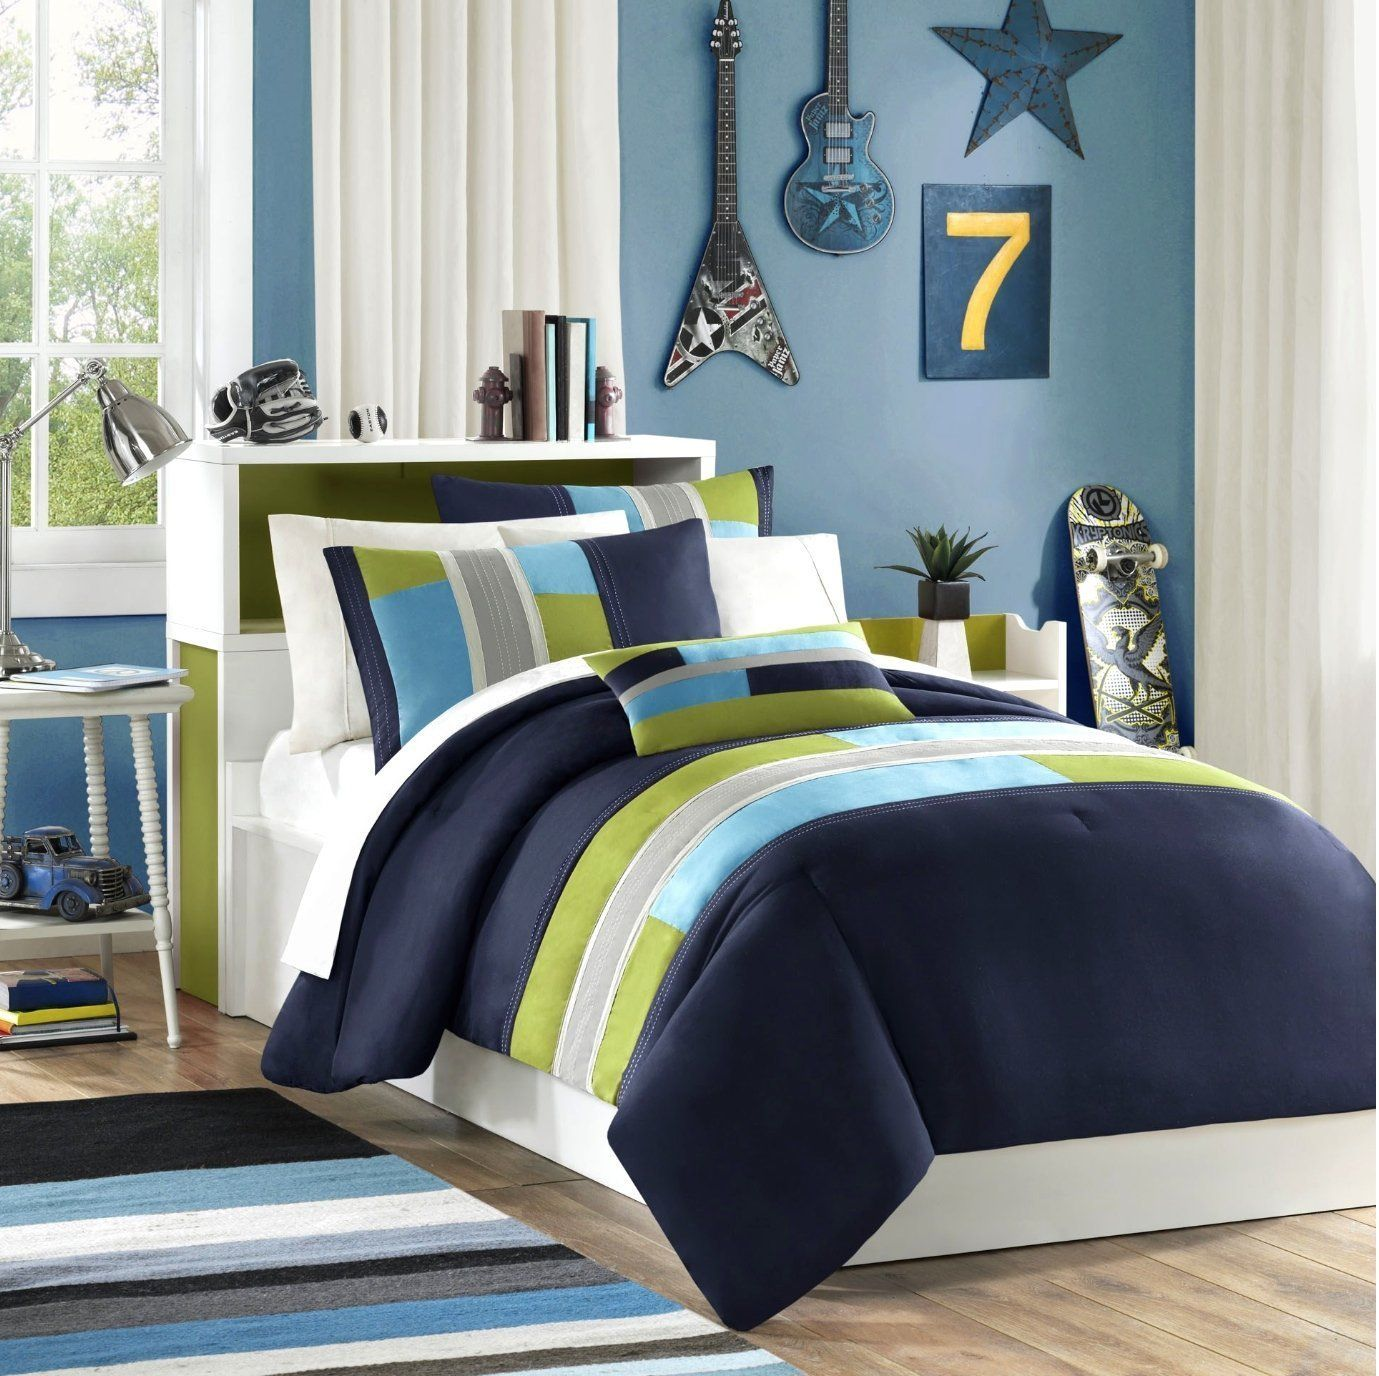 Bedroom Sets Boys royal blue and navy bedding sets | twin comforter, comforter and twins